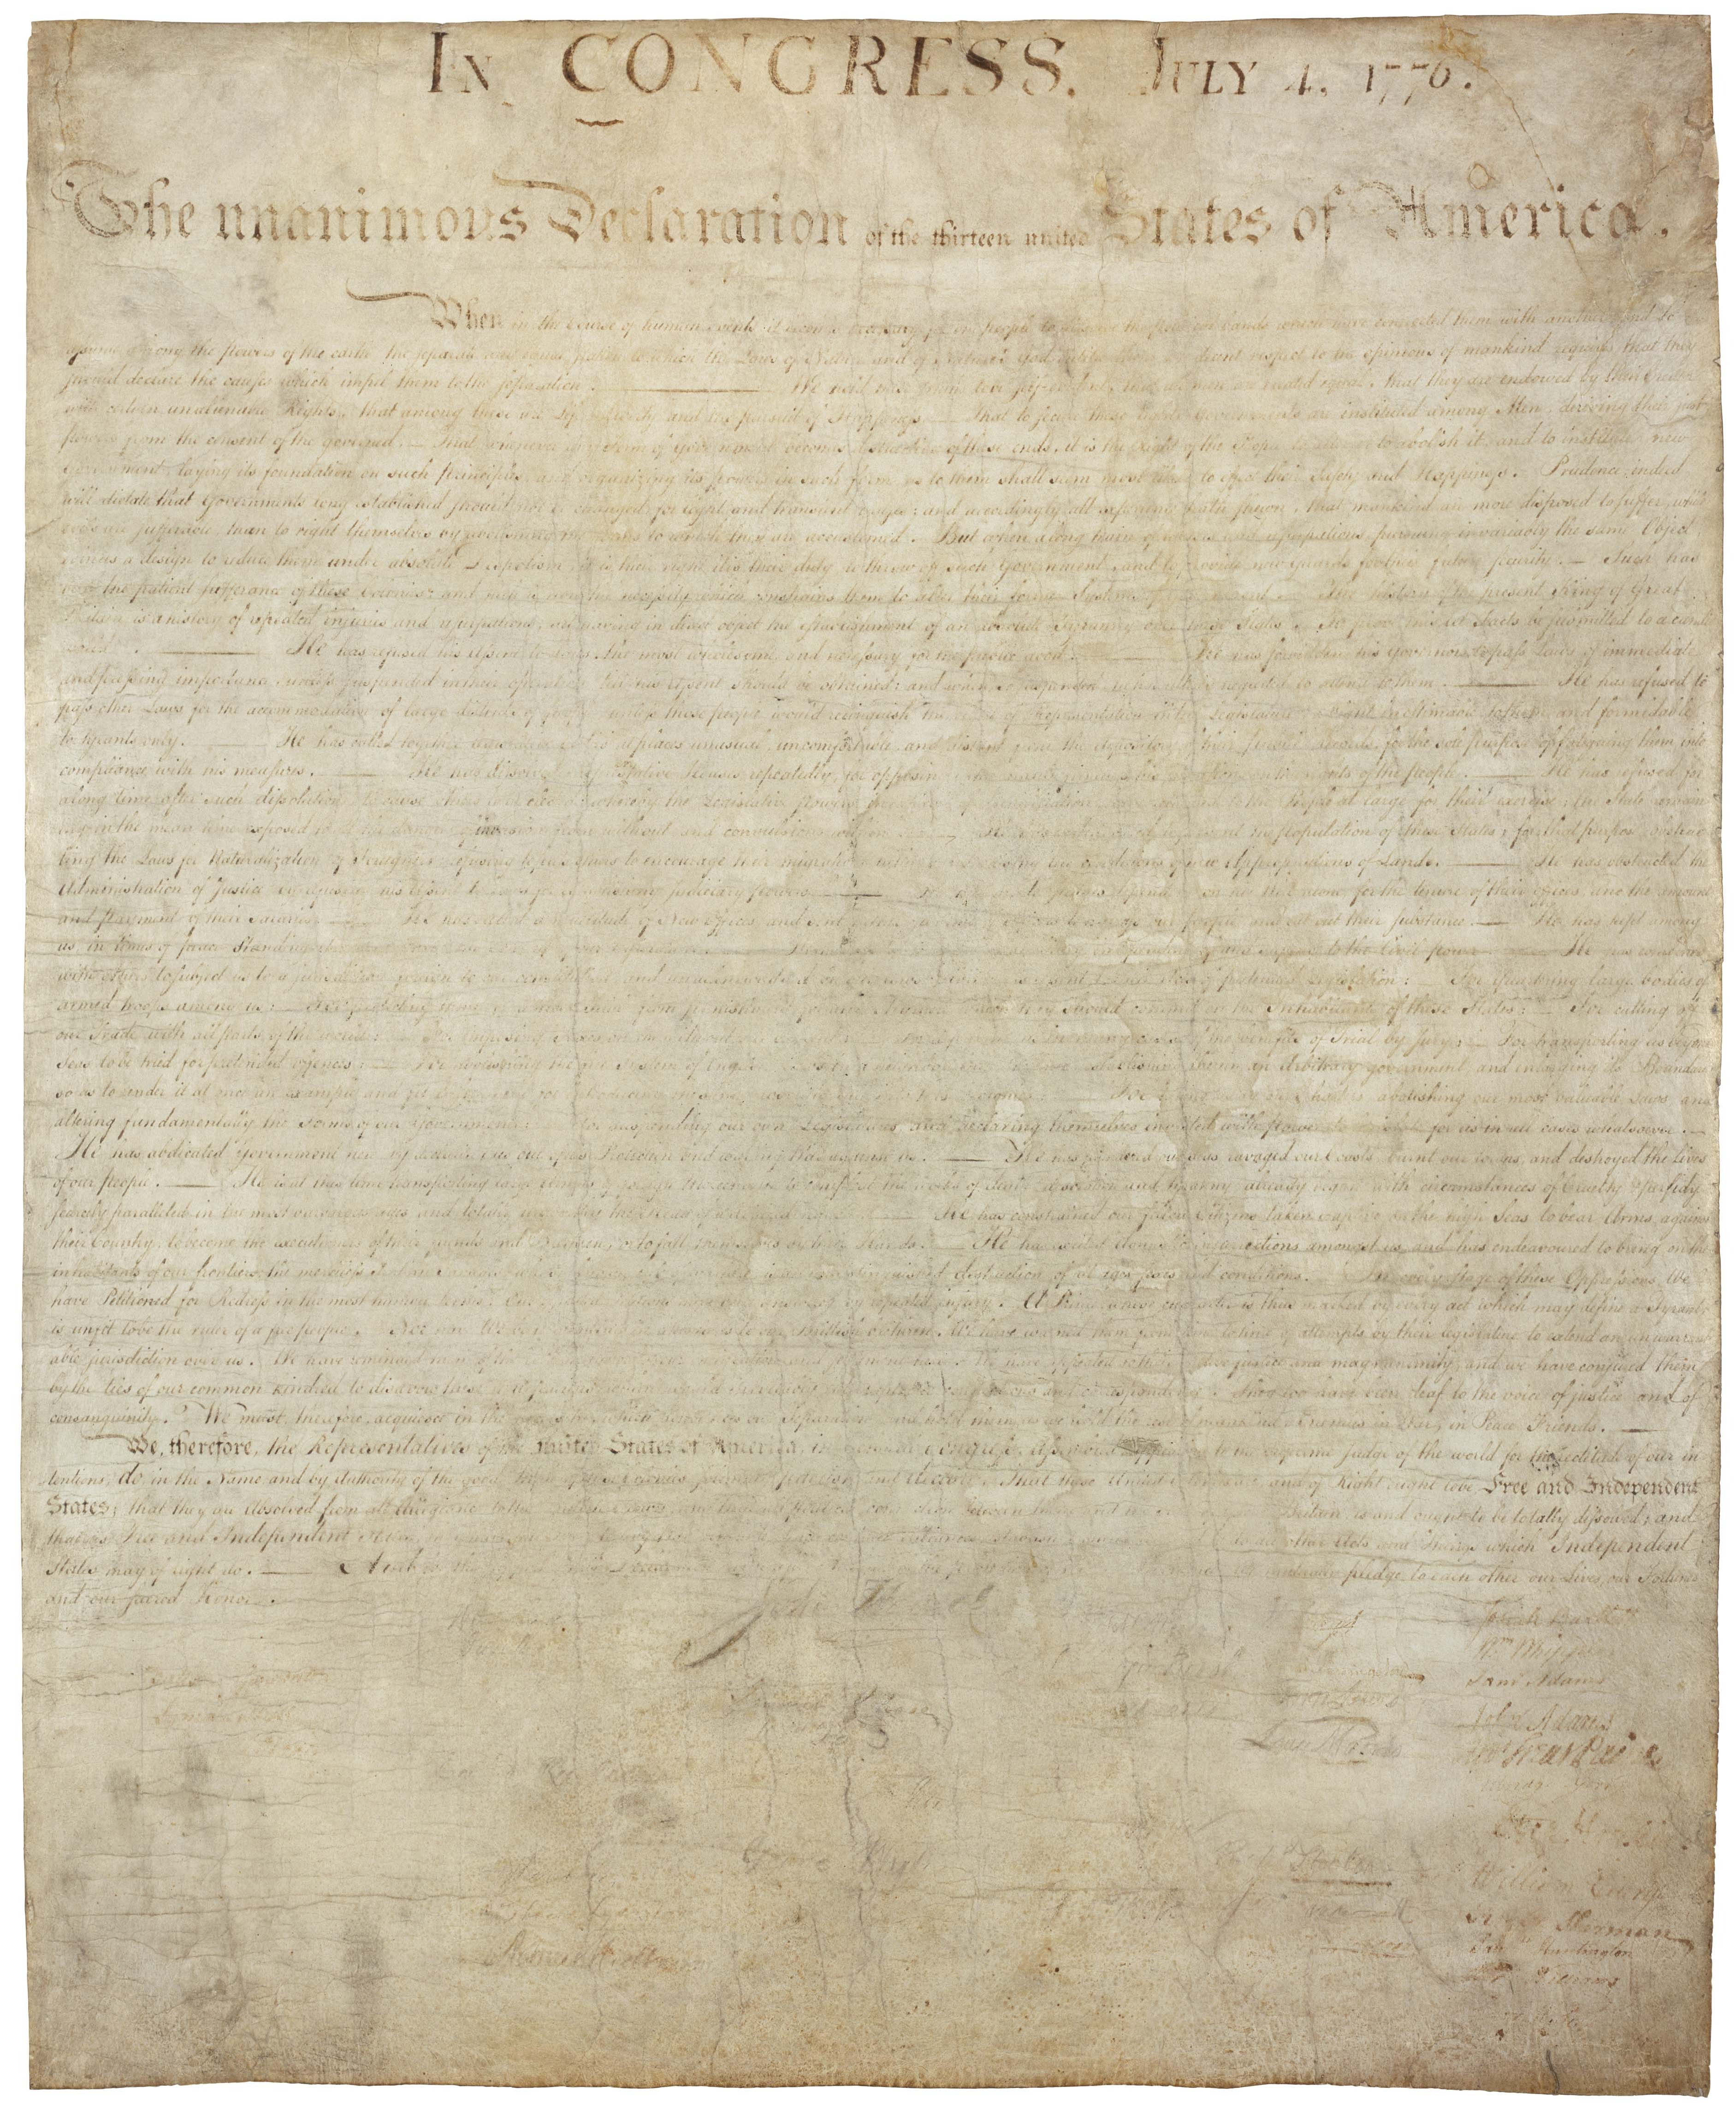 Free Printable Copy Of The Declaration Of Independence